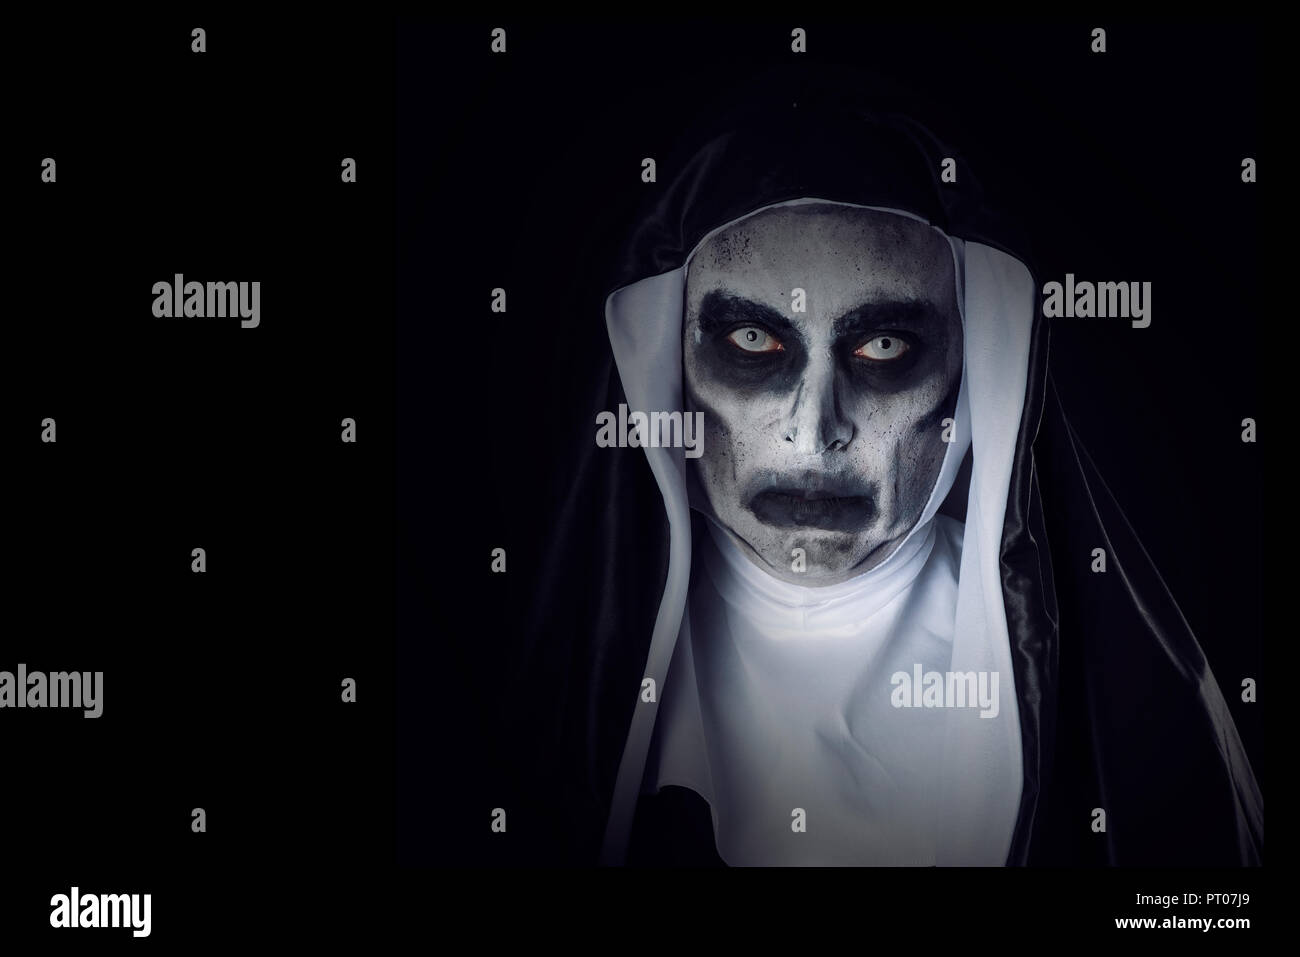 portrait of a frightening evil nun, wearing a typical black and white habit, against a black background, with some blank space on the left - Stock Image